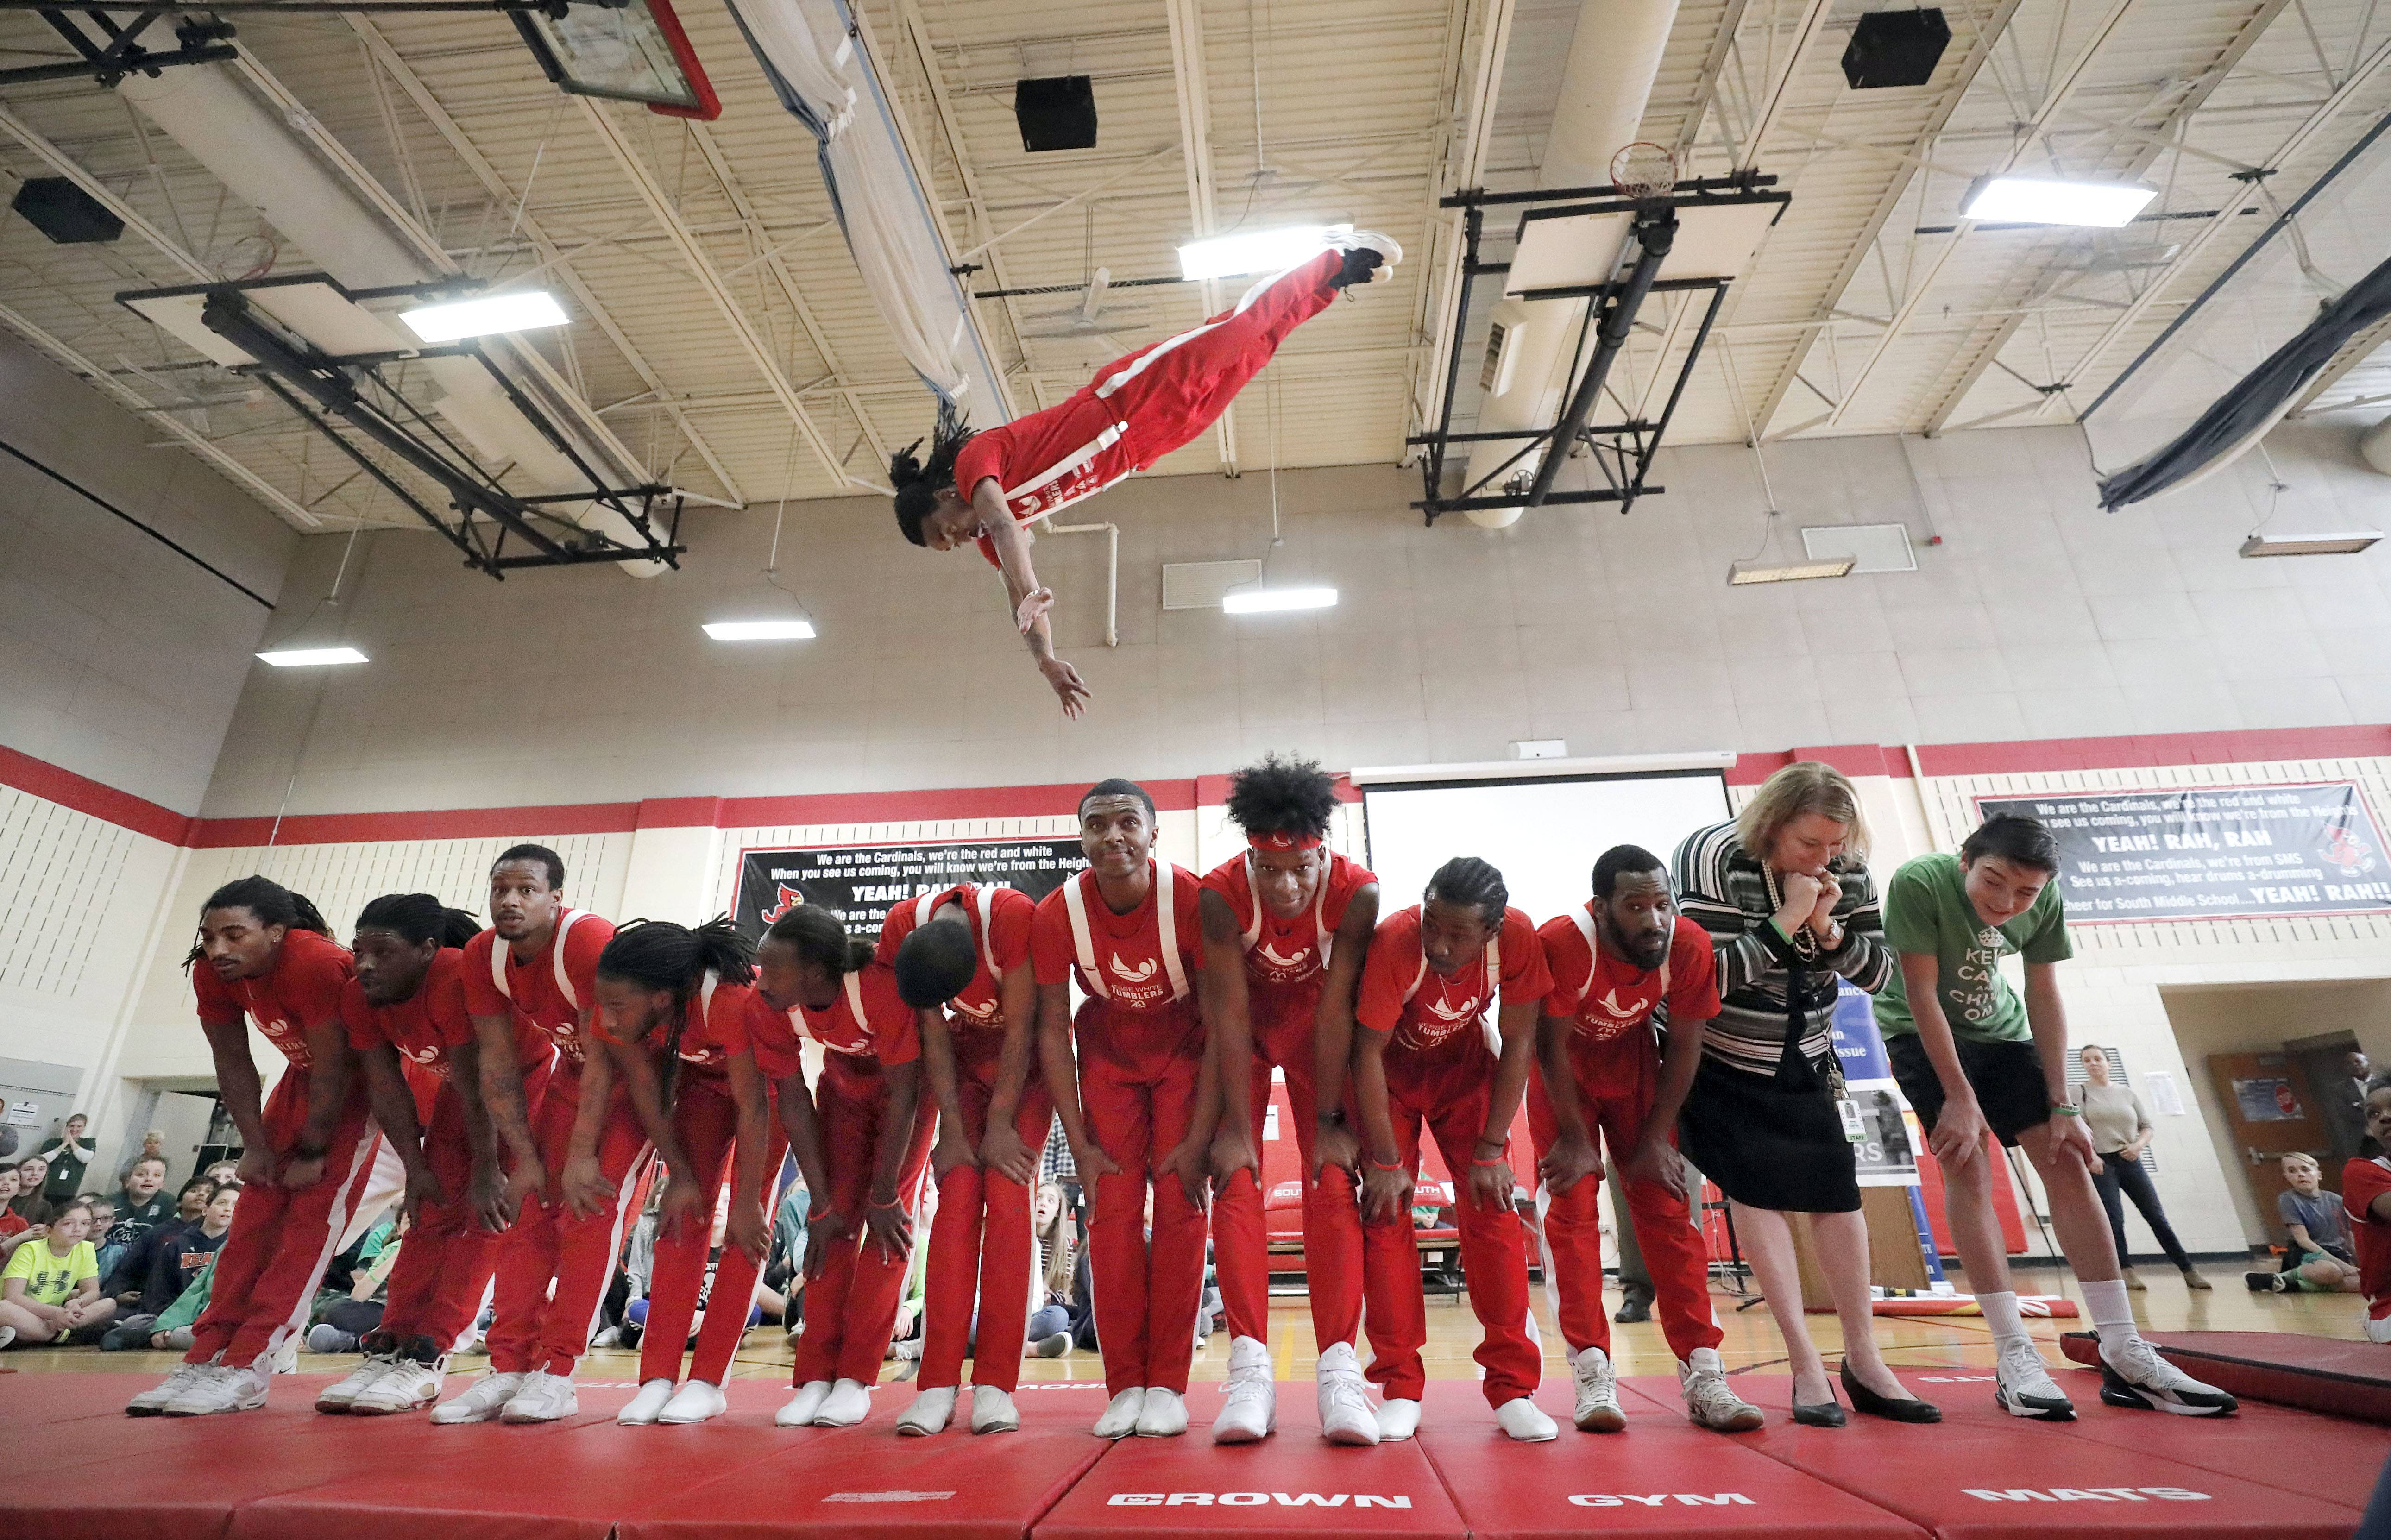 Taylor Petrillo, from right, and South Middle School Principal Piper Boston join the Jesse White Tumblers Tuesday afternoon during a performance in the Arlington Heights school's gym. Taylor organized the all-school assembly to honor organ donors, including his 27-year-old brother Matthew, who died in September.